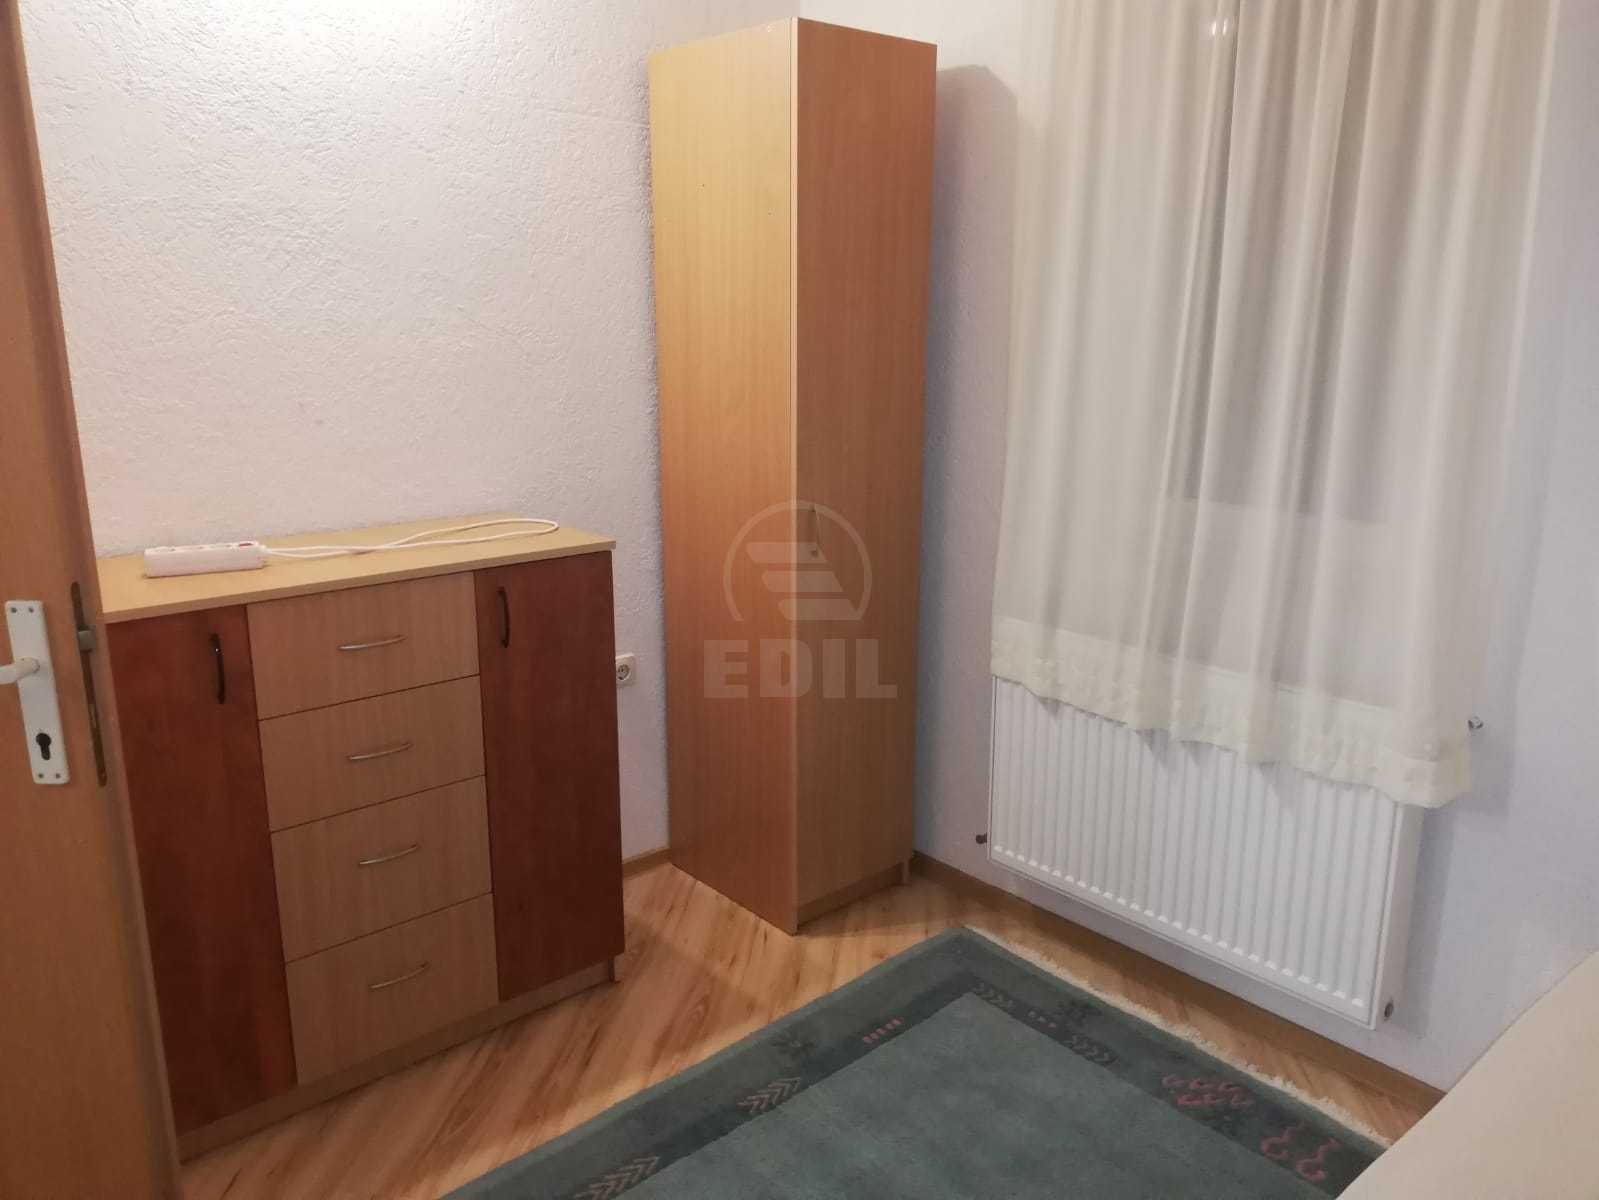 Apartment for rent 3 rooms, APCJ305940-6